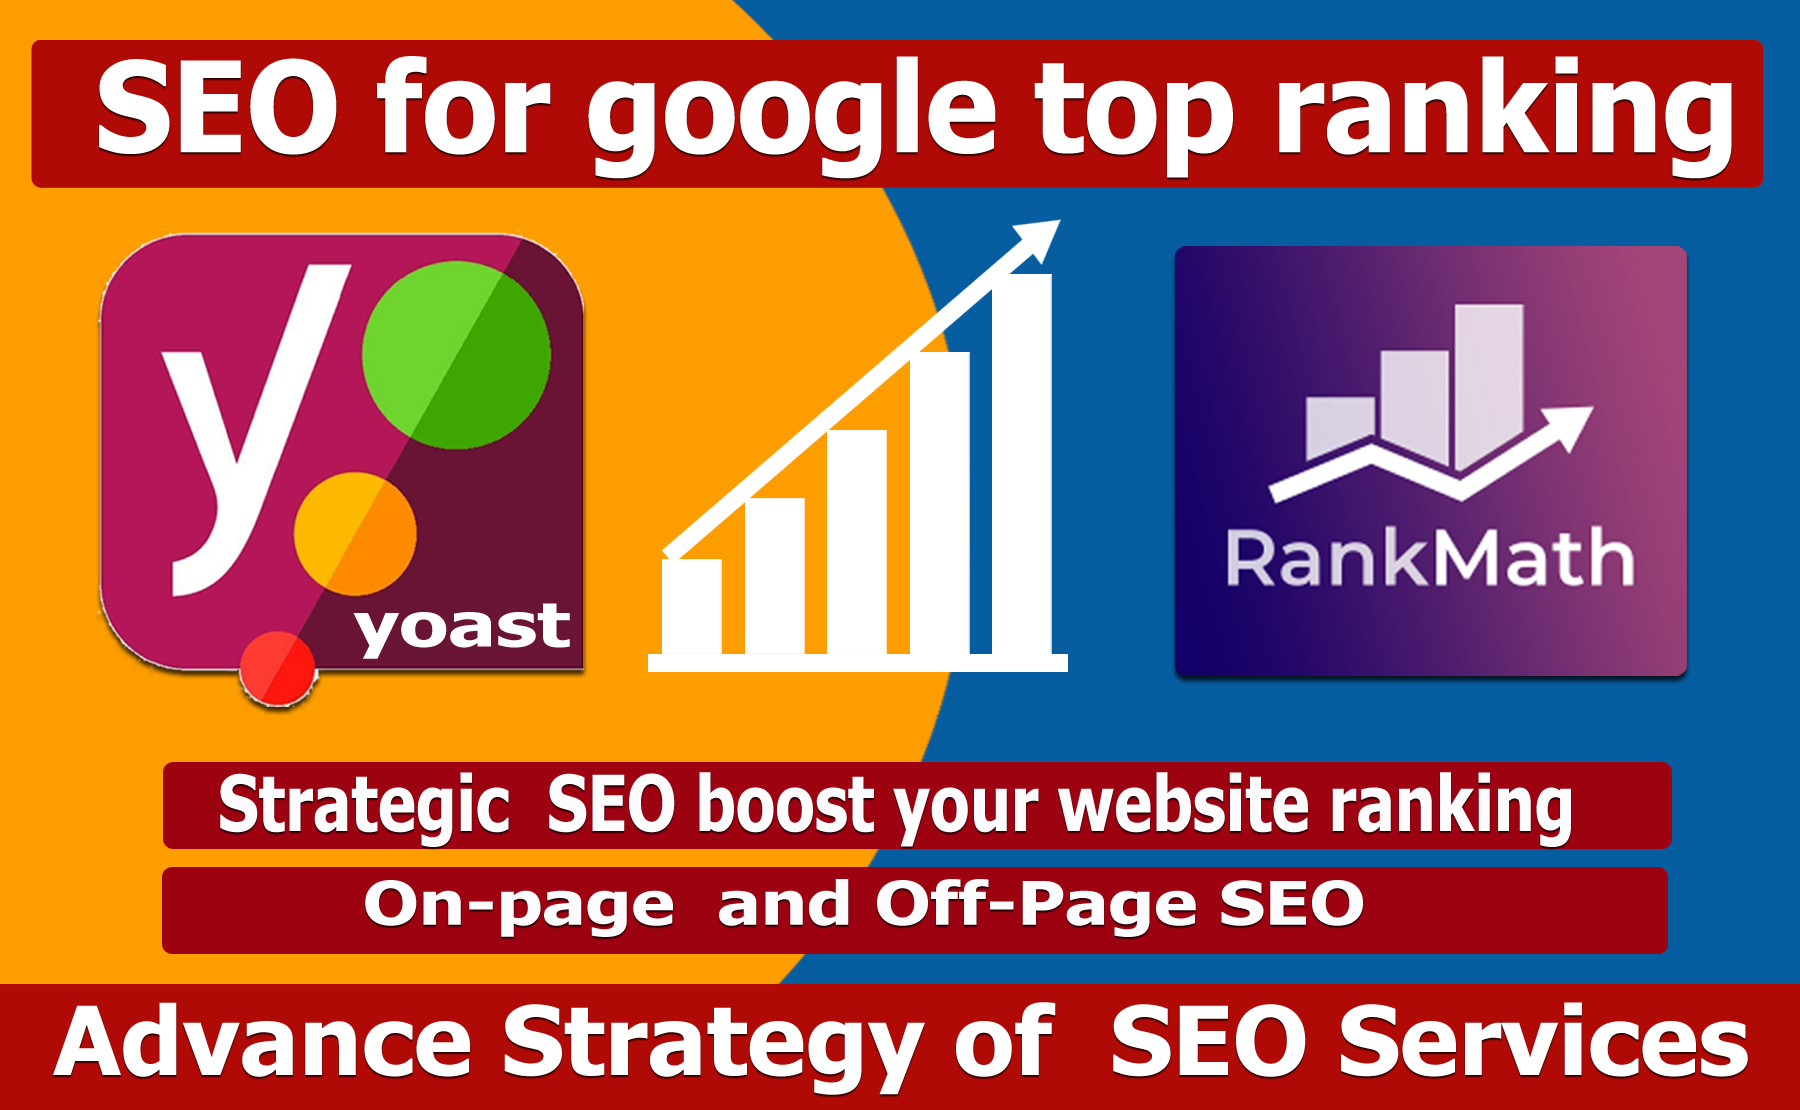 I will provide seo service for your website ranking on google top